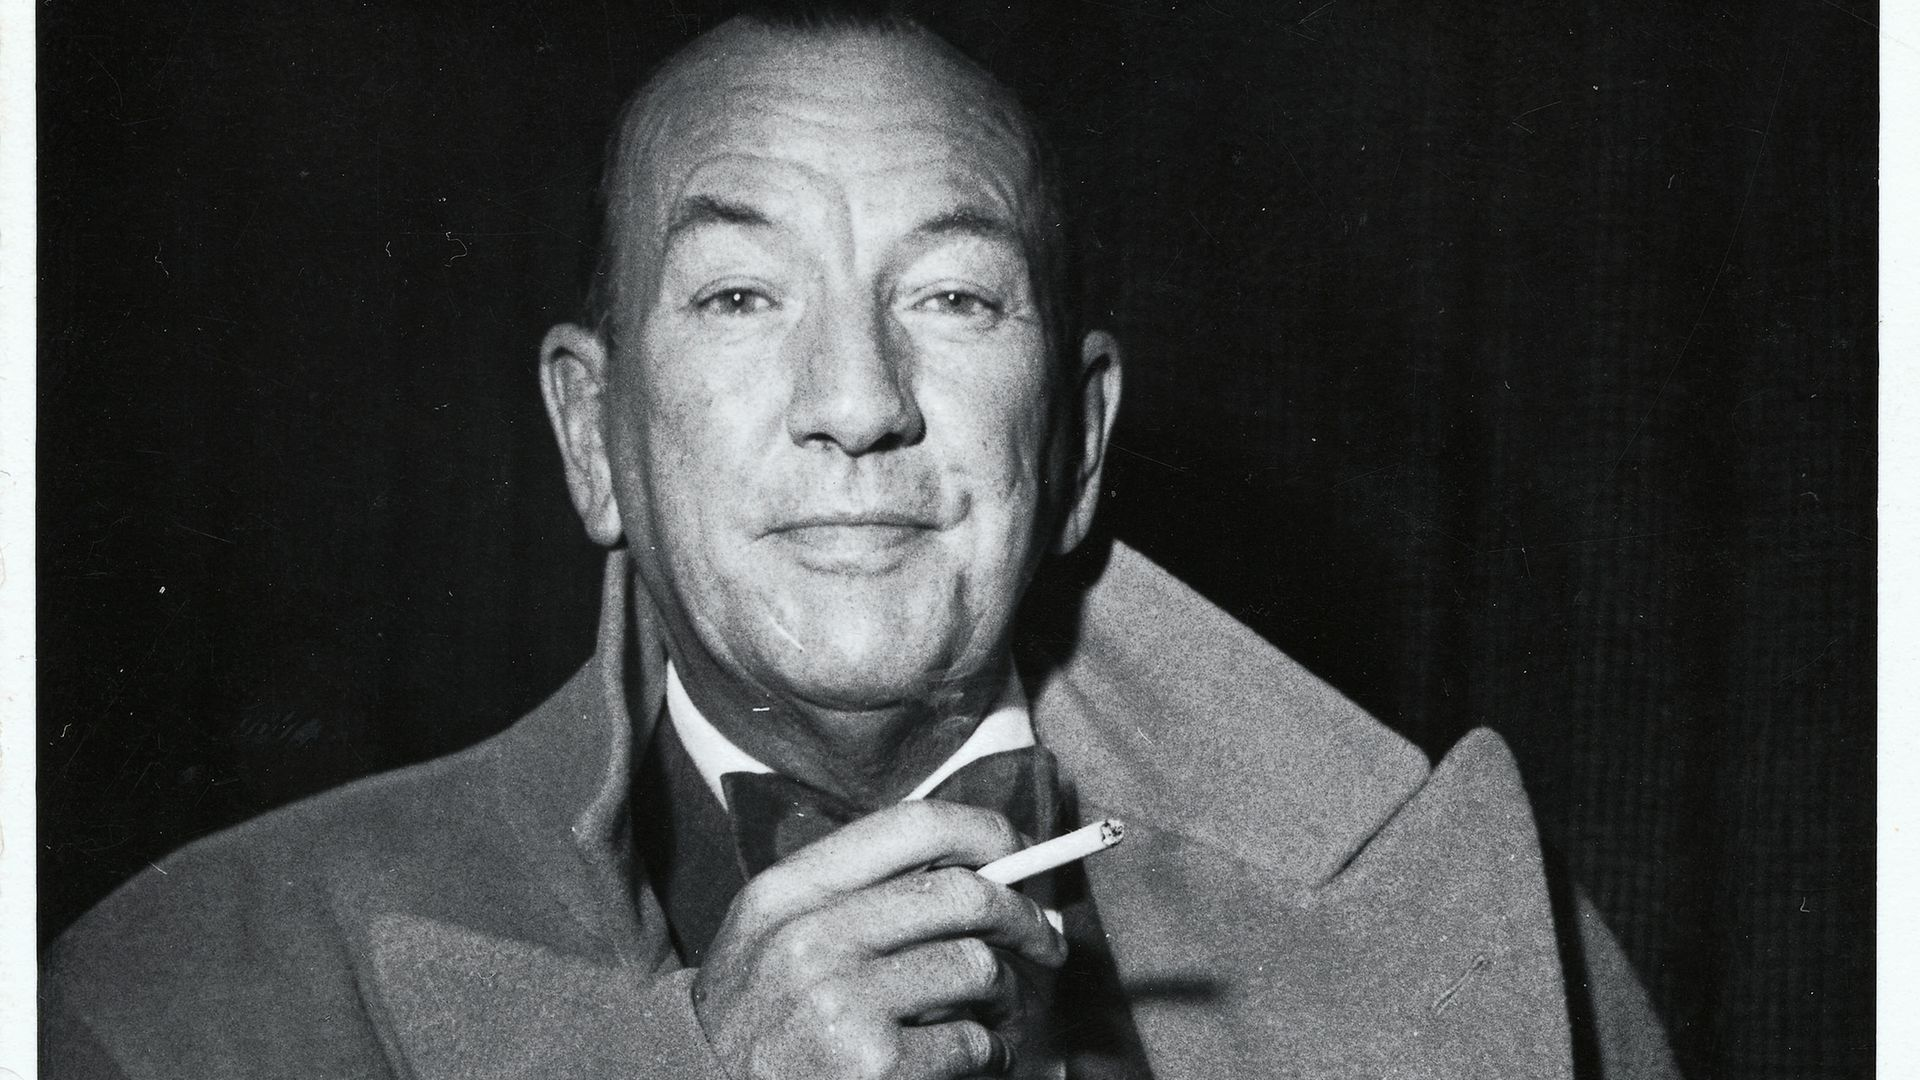 Not the first Noel... Sir Noel Peirce Coward (1899-1973), English actor, playwright and composer. - Credit: Bettmann Archive